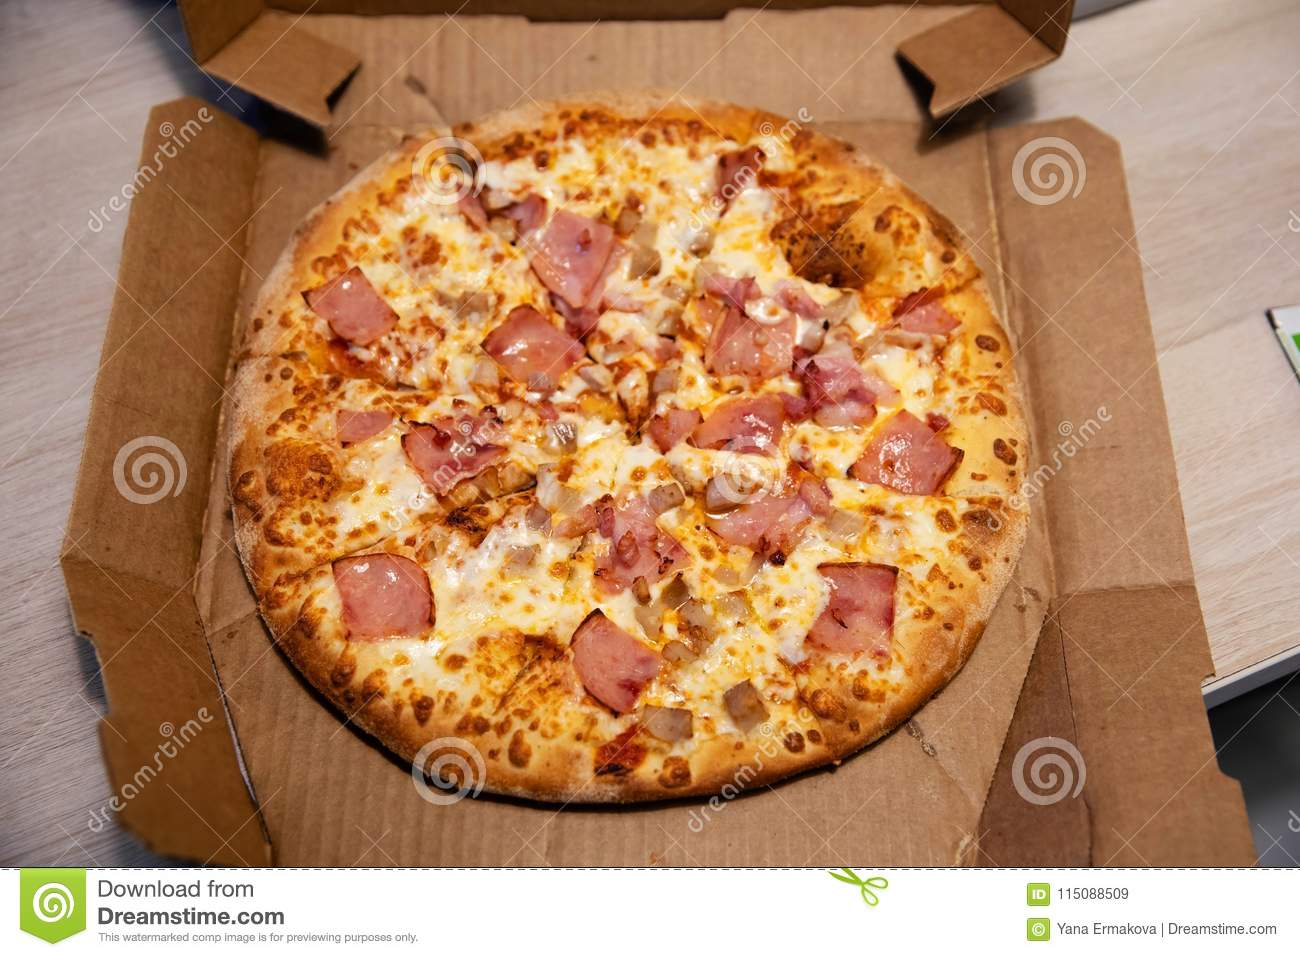 Hot Italian pizza in delivery box